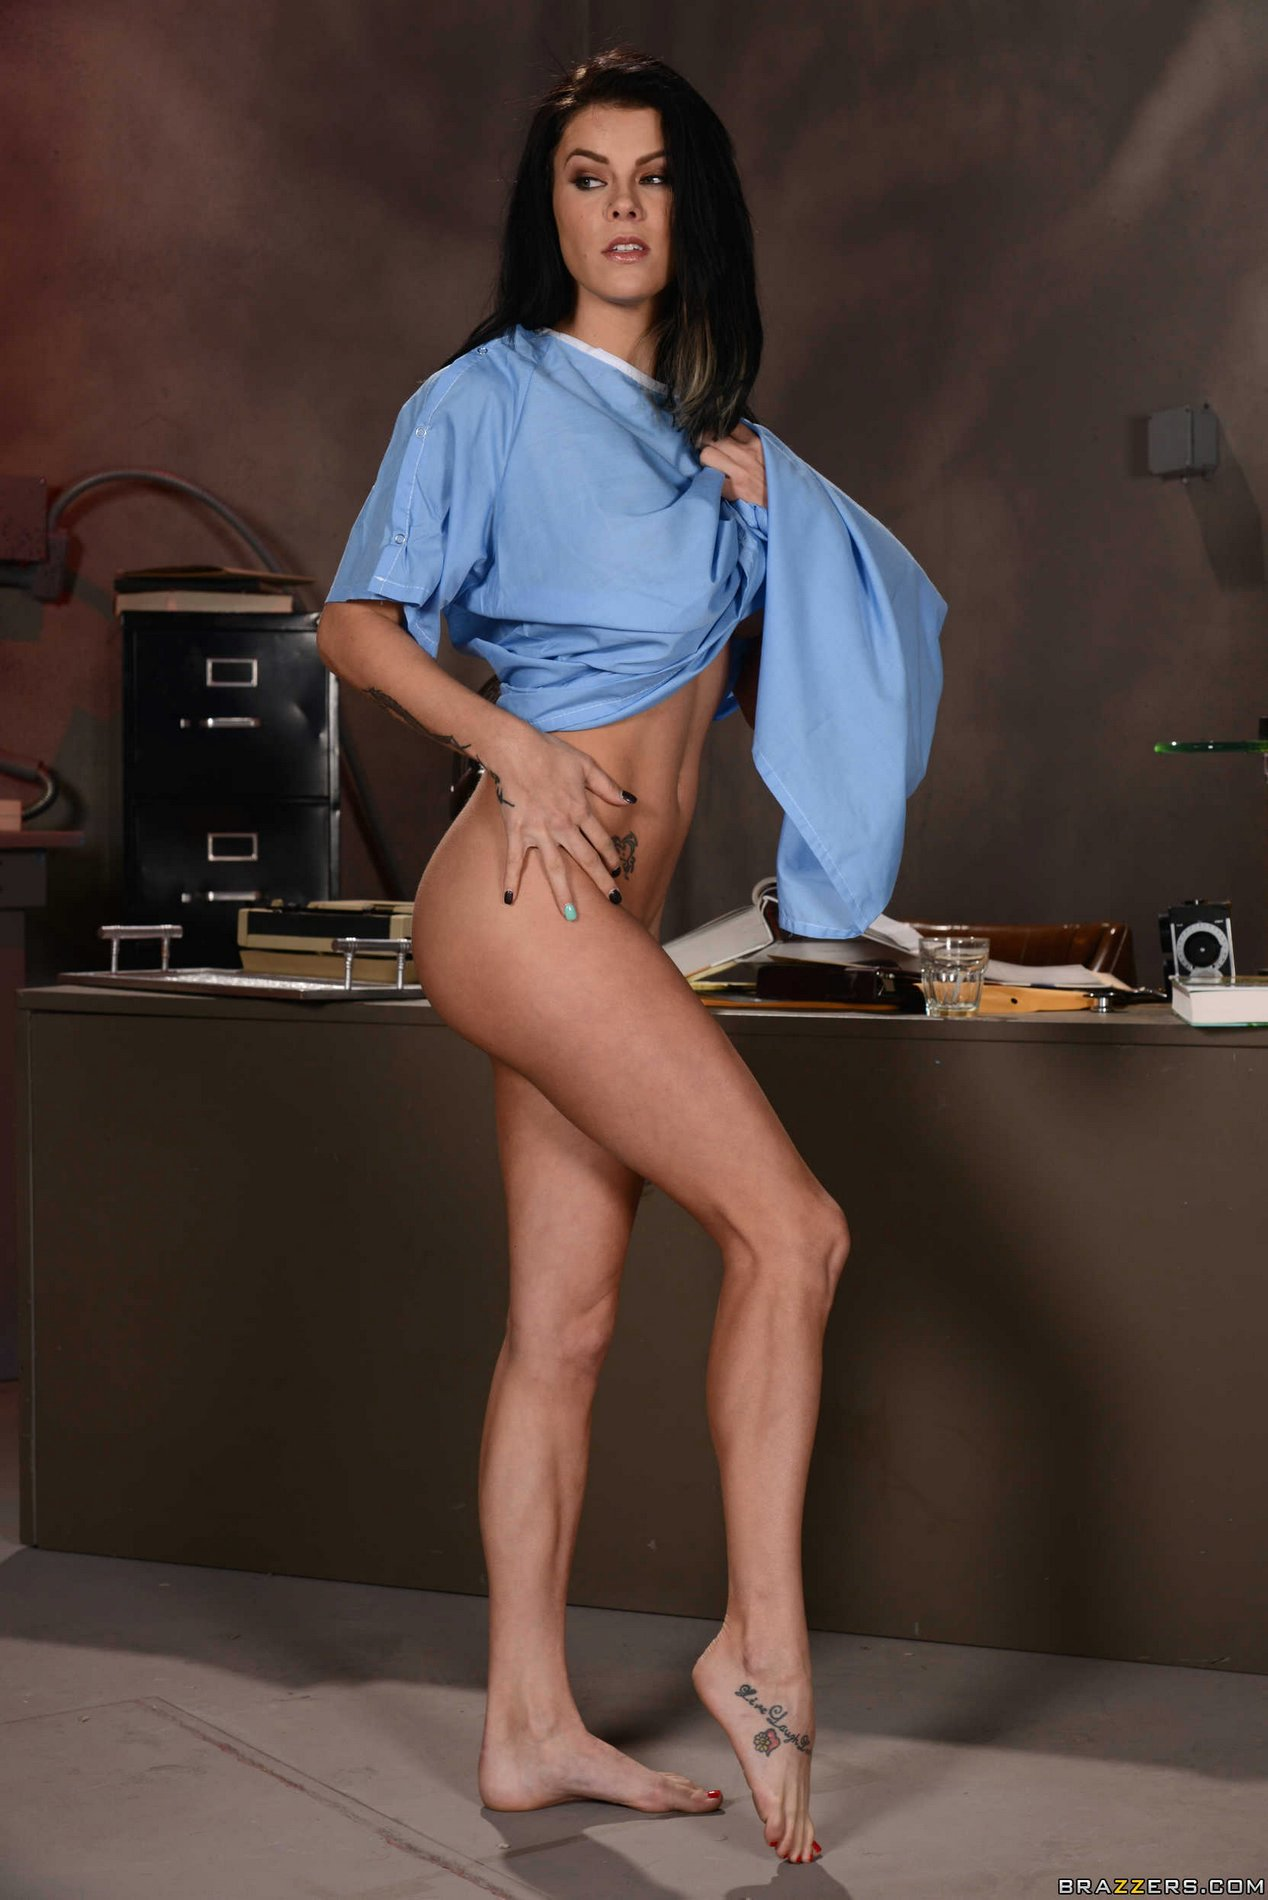 Peta Jensen shows off her amazing naked body in the office